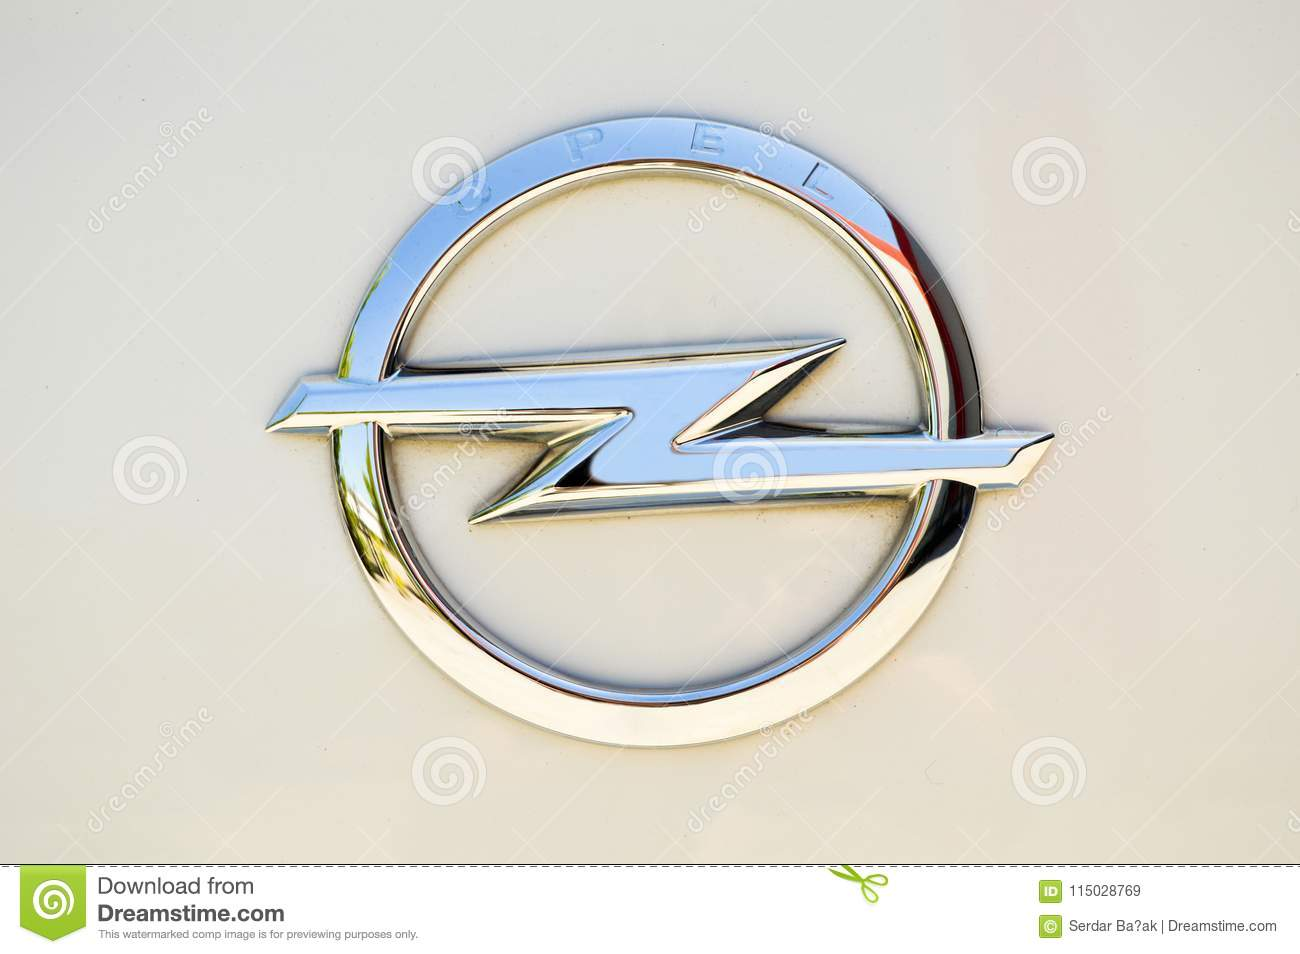 Opel Metal Symbol Editorial Stock Image Image Of Expensive 115028769